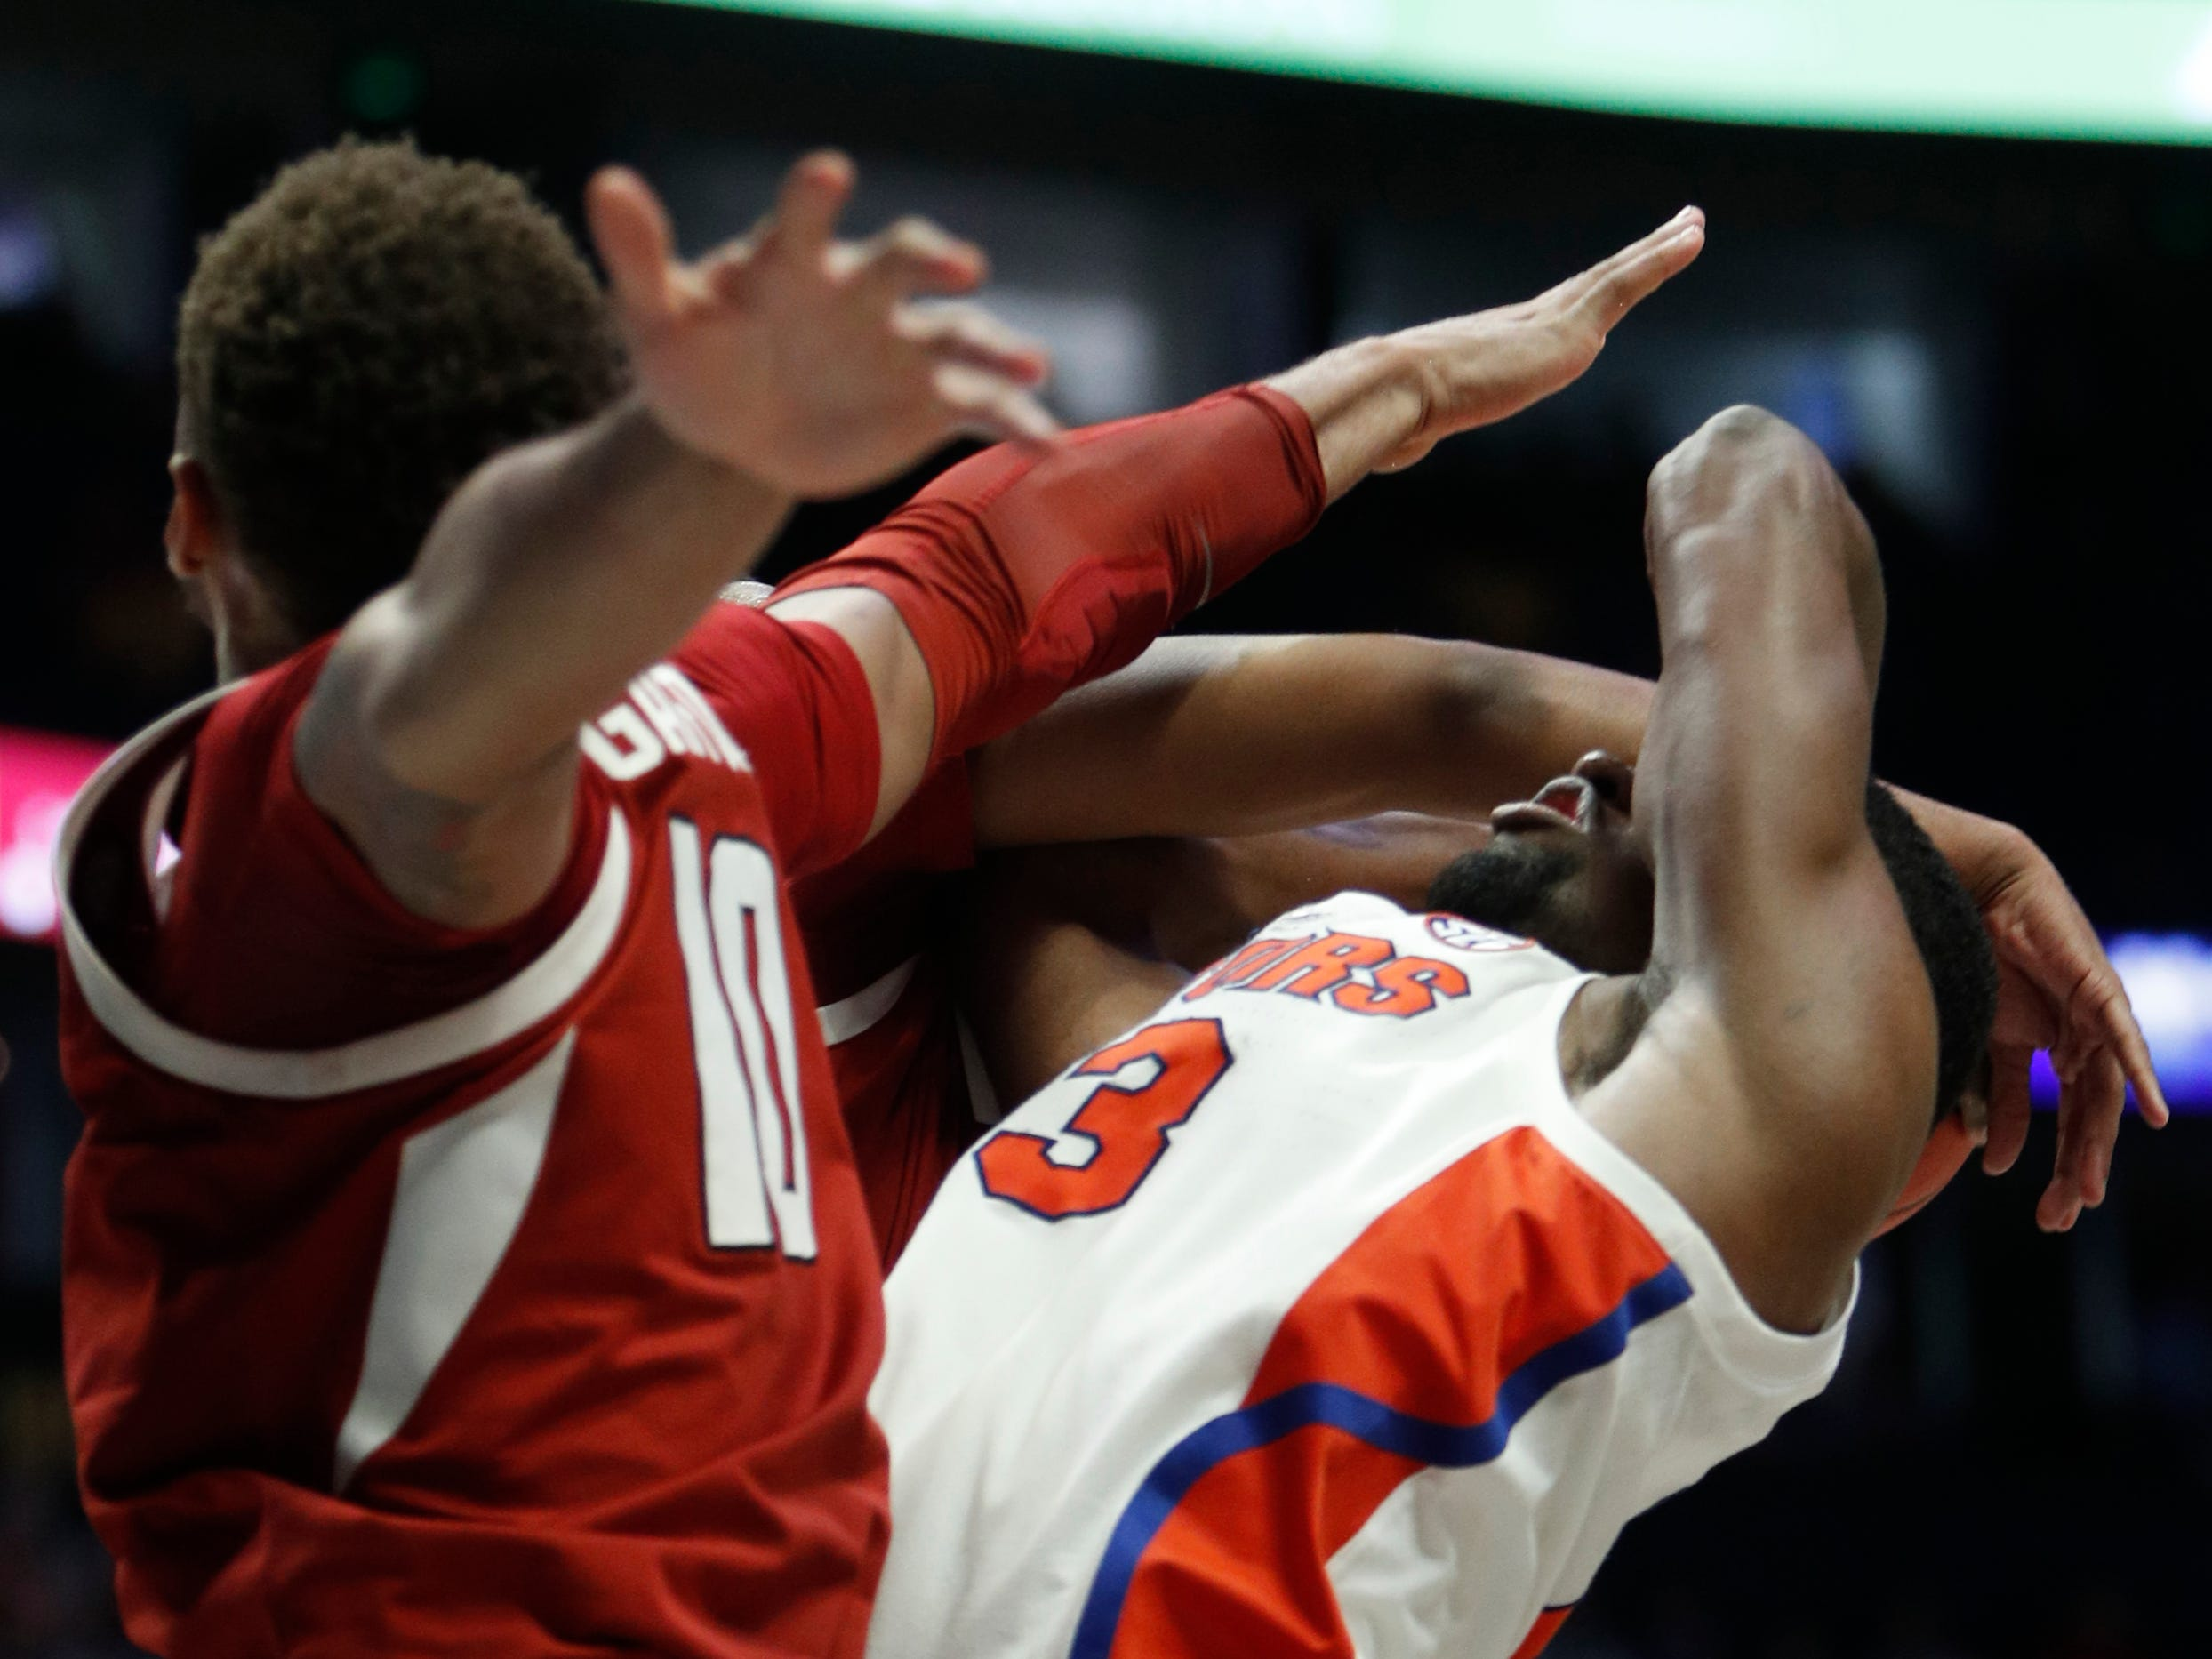 Florida guard Jalen Hudson (3) gets tangled up with Arkansas defenders during the second half of the SEC Men's Basketball Tournament game at Bridgestone Arena in Nashville, Tenn., Thursday, March 14, 2019.